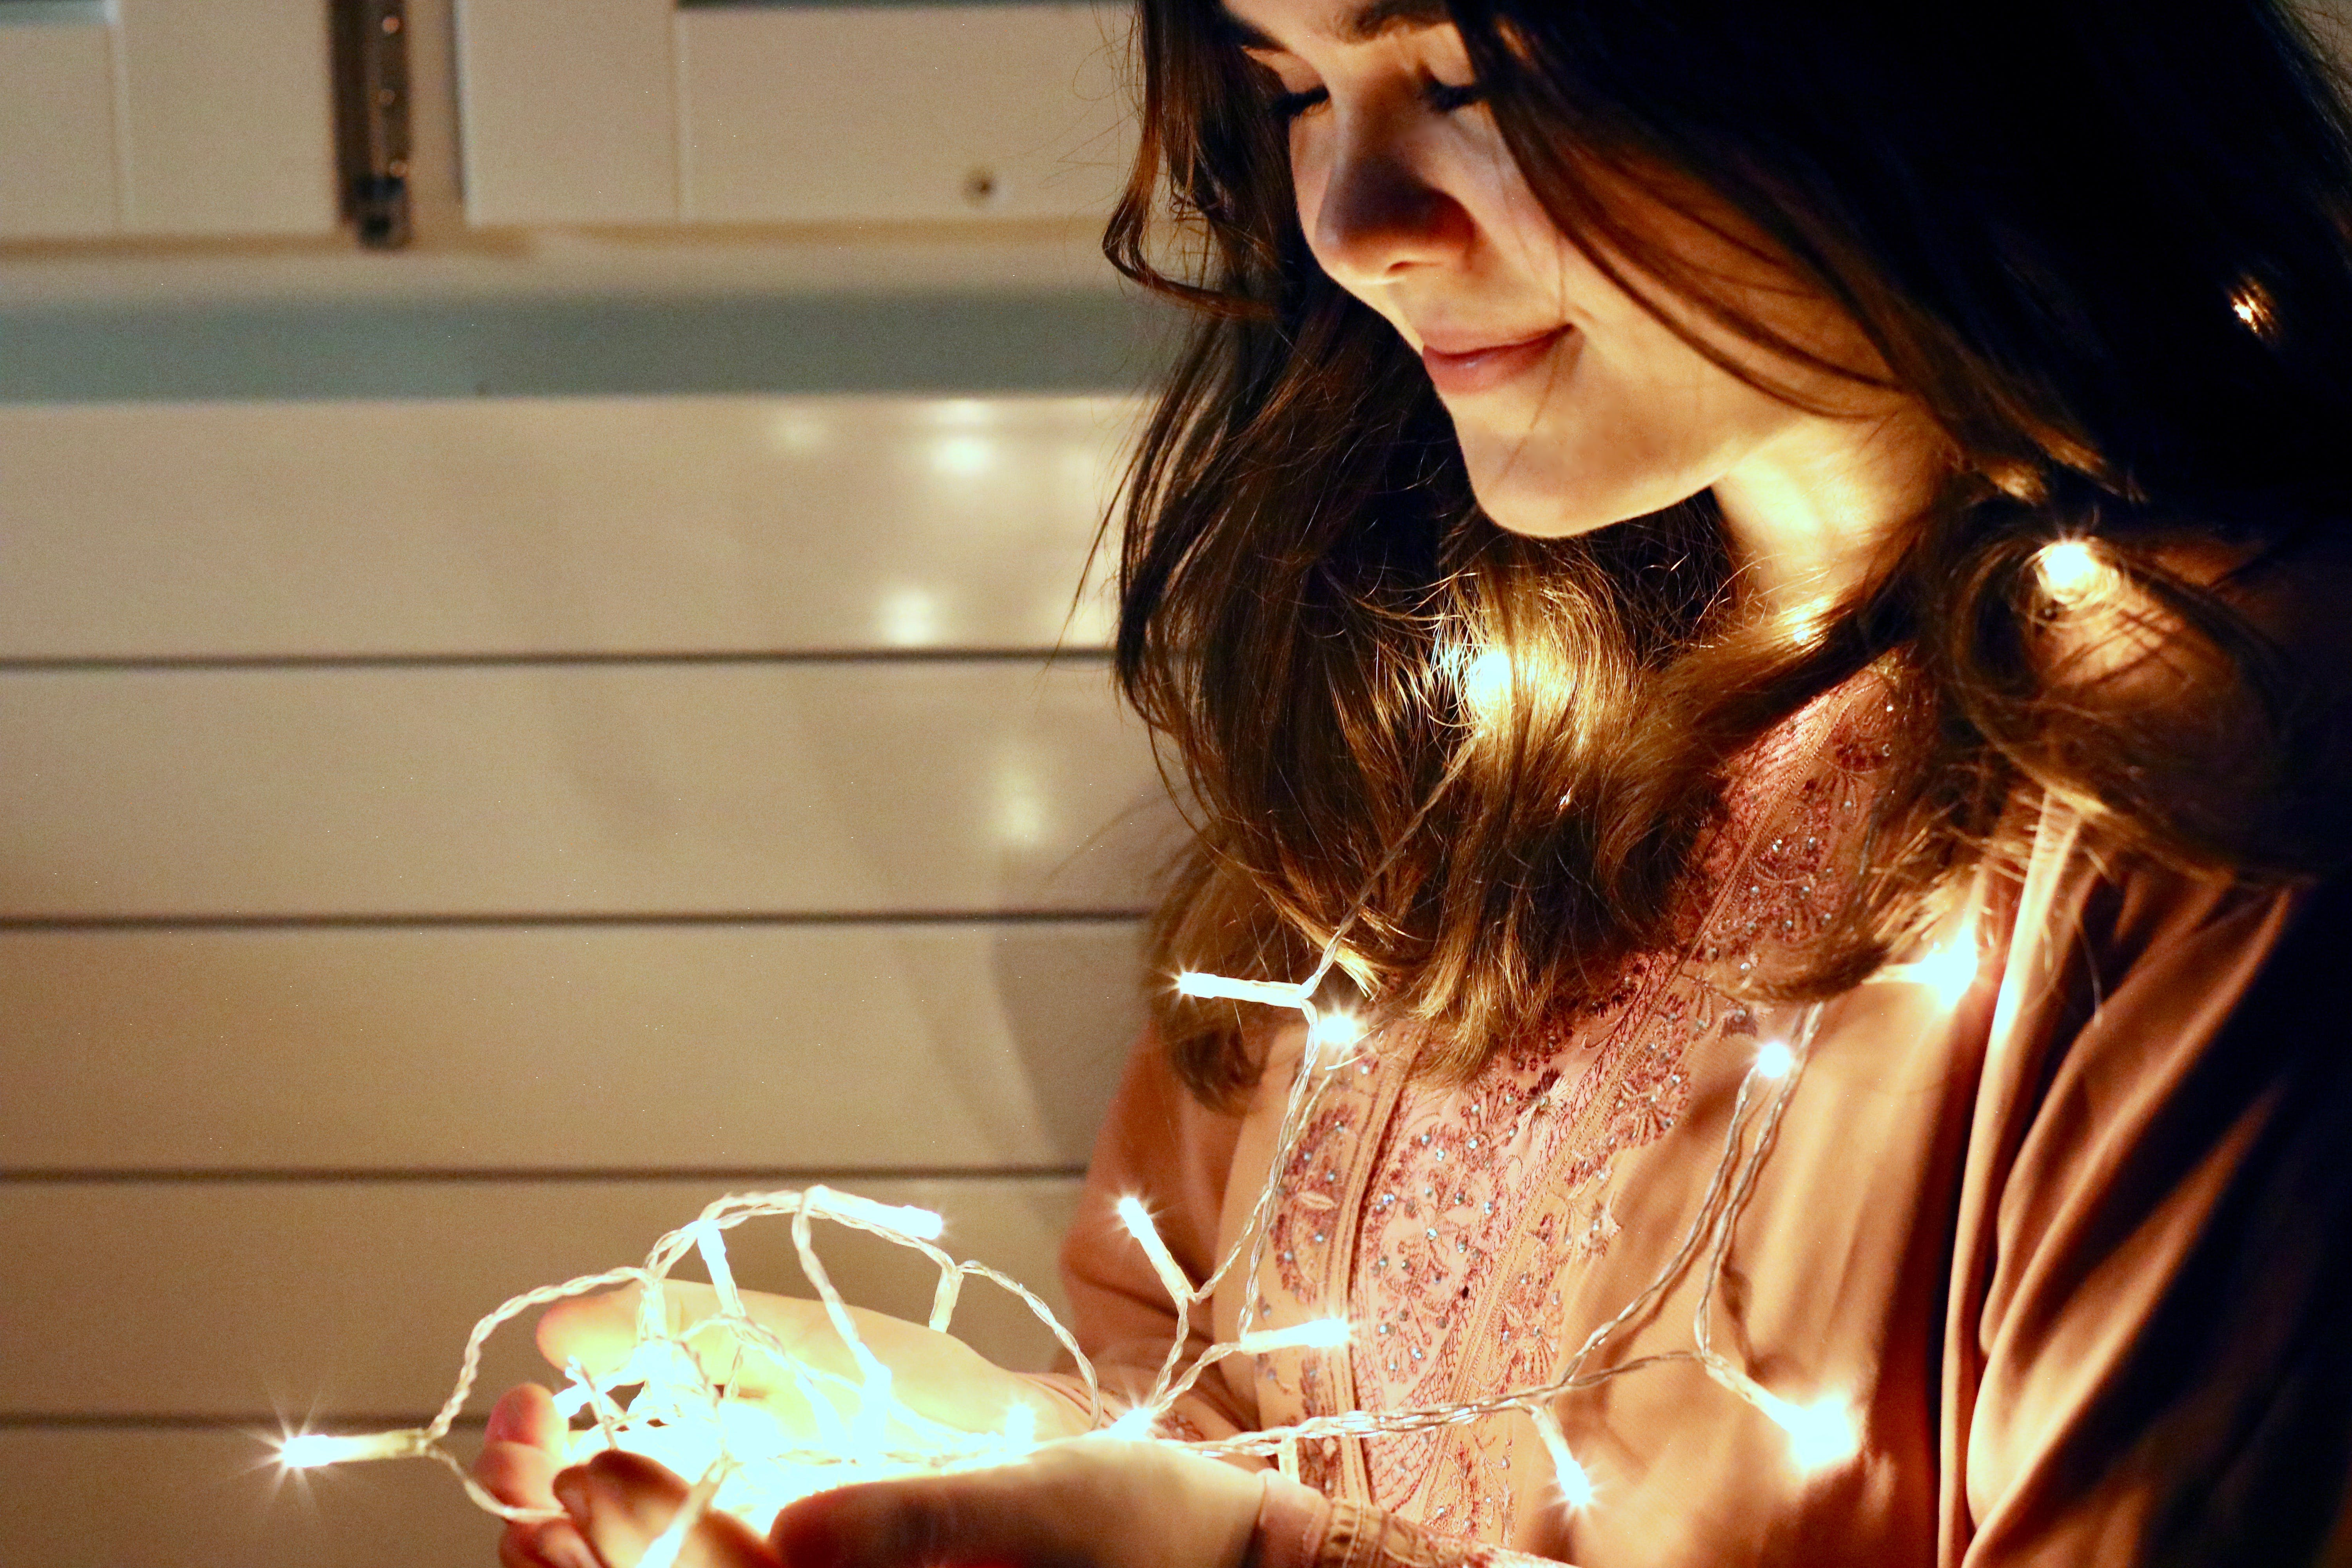 Woman Holding Lighted String Light